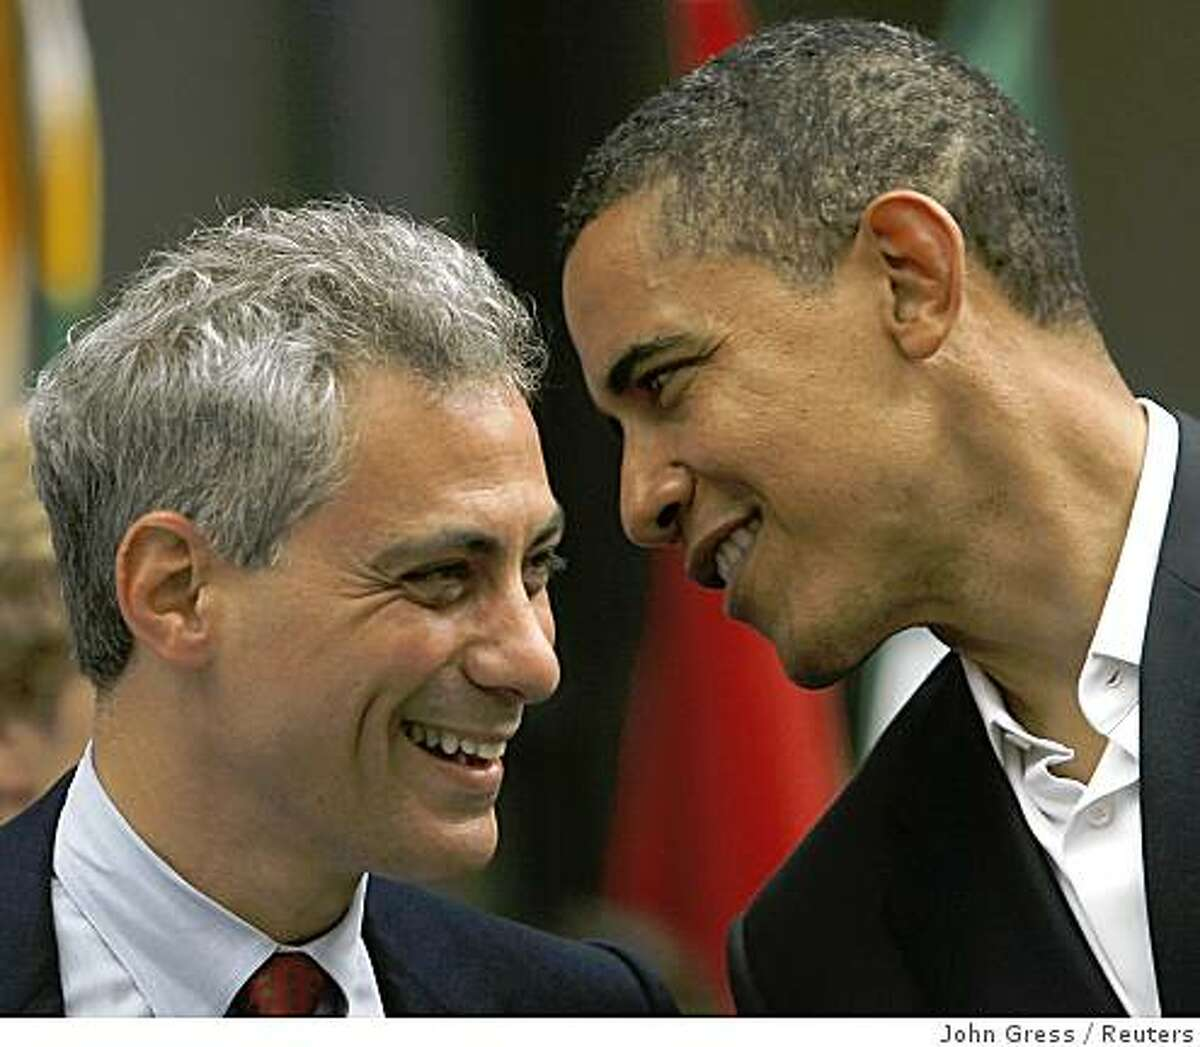 Democratic presidential nominee Senator Barack Obama (D-IL) (R) speaks with Representative Rahm Emanuel (D-IL) during a Chicago 2016 Olympics rally in Chicago in this June 6, 2008 file photo. Emanuel, a member of the Democratic leadership in the House of Representatives, has been offered the job to head President-elect Barack Obama's staff, party sources said. The sources said that the job was offered to Emanuel on November 5, 2008, just hours after Obama was elected, and Emanuel was expected to quickly accept the post of White House chief of staff. REUTERS/John Gress/Files (UNITED STATES) US PRESIDENTIAL ELECTION CAMPAIGN 2008 (USA)